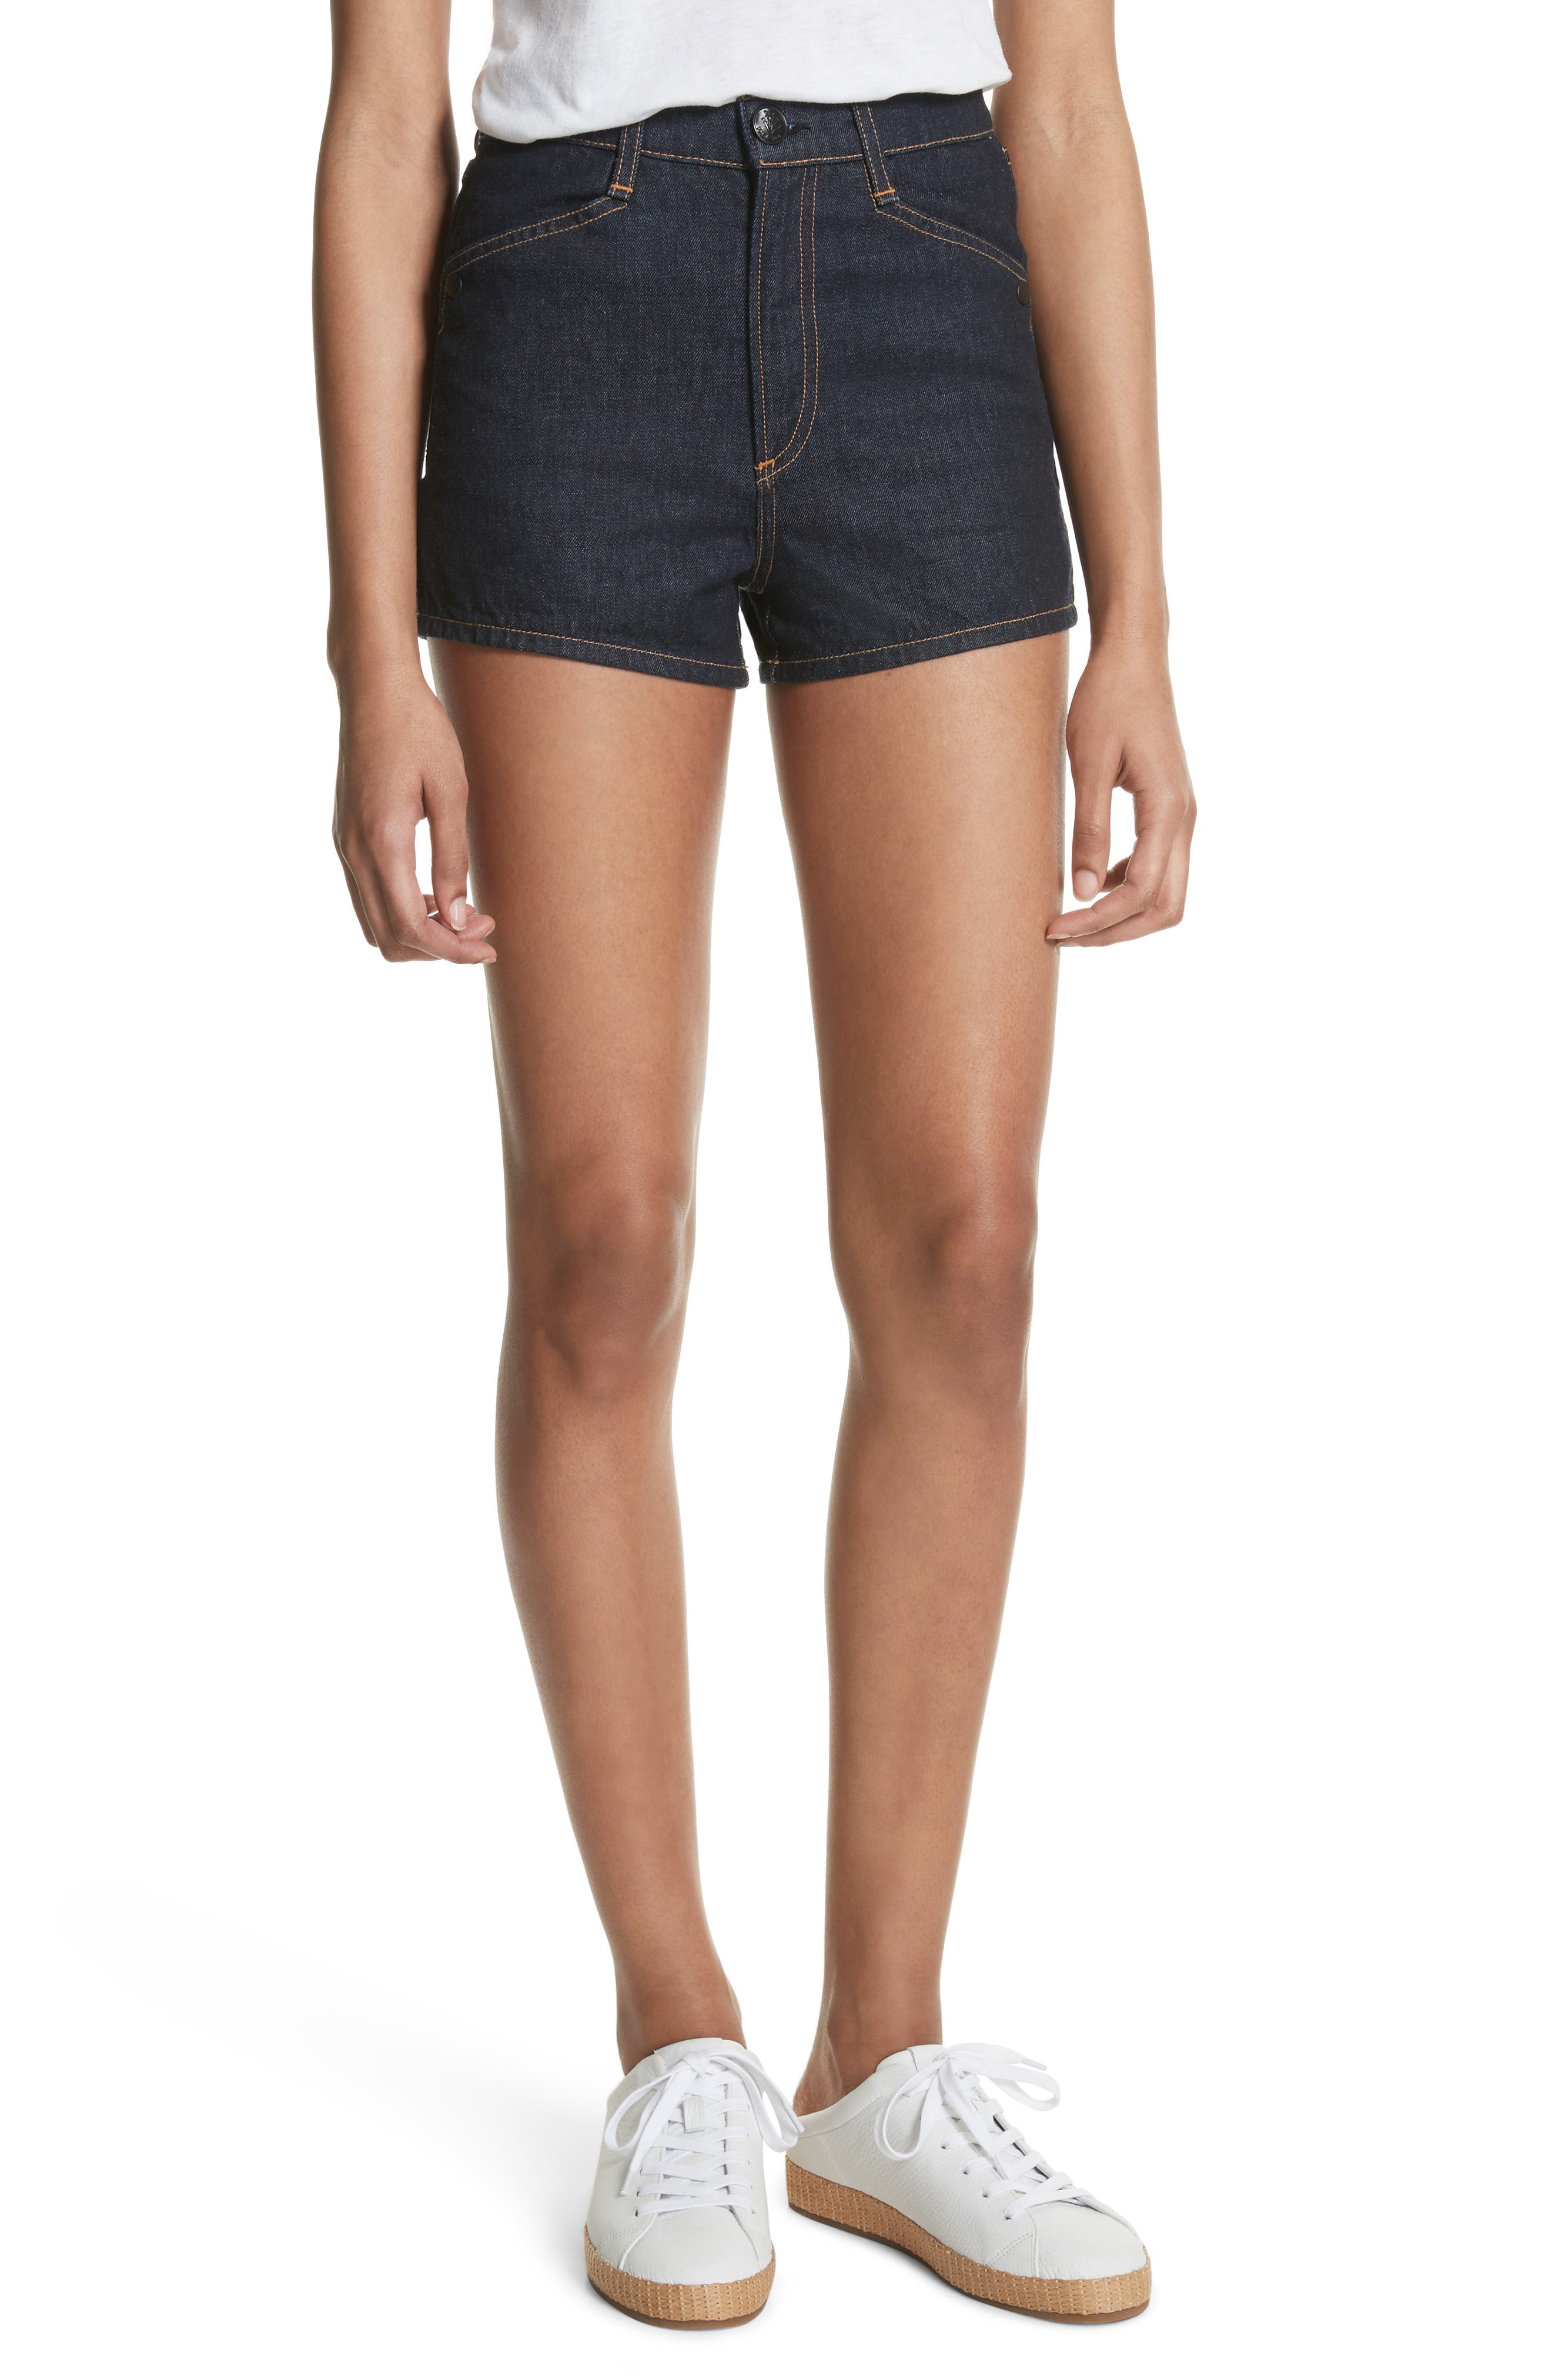 Ellie Denim Shorts,                         Main,                         color, Indigo